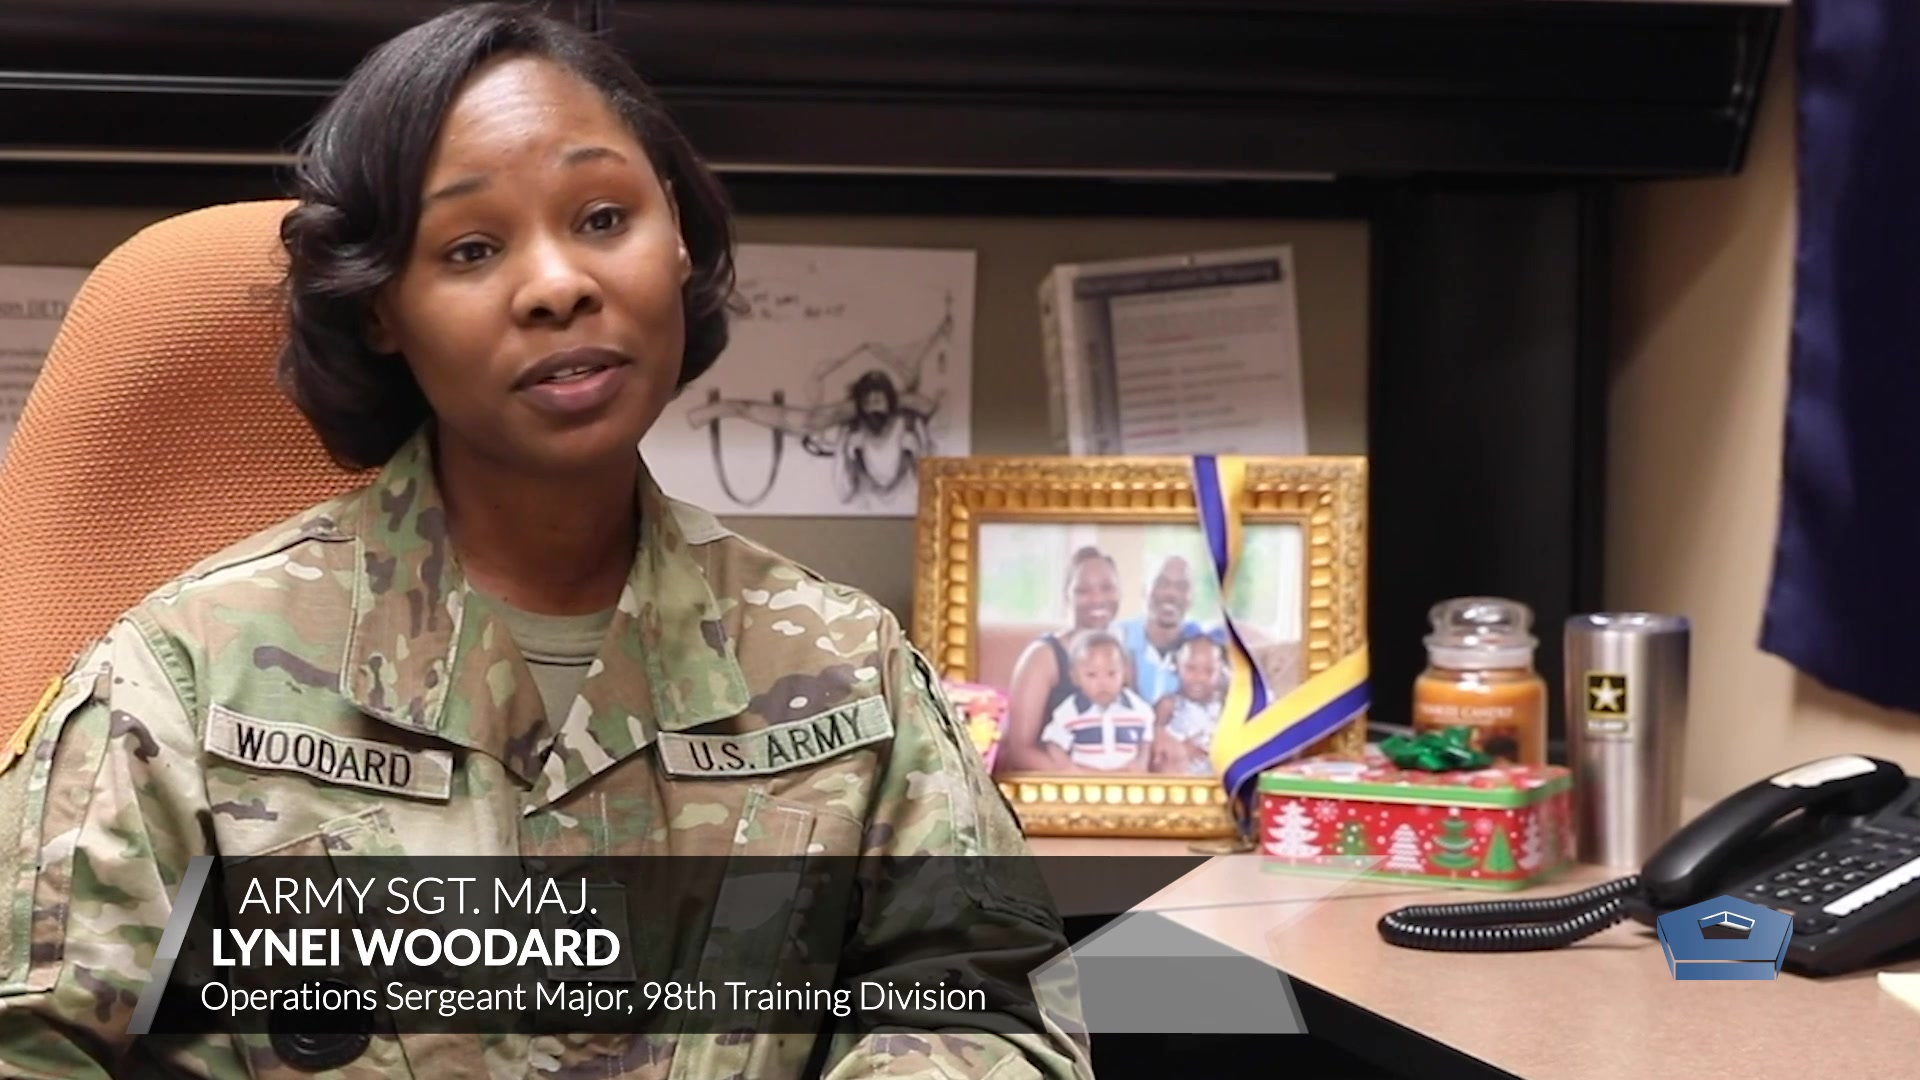 A soldier speaks while sitting at a desk.